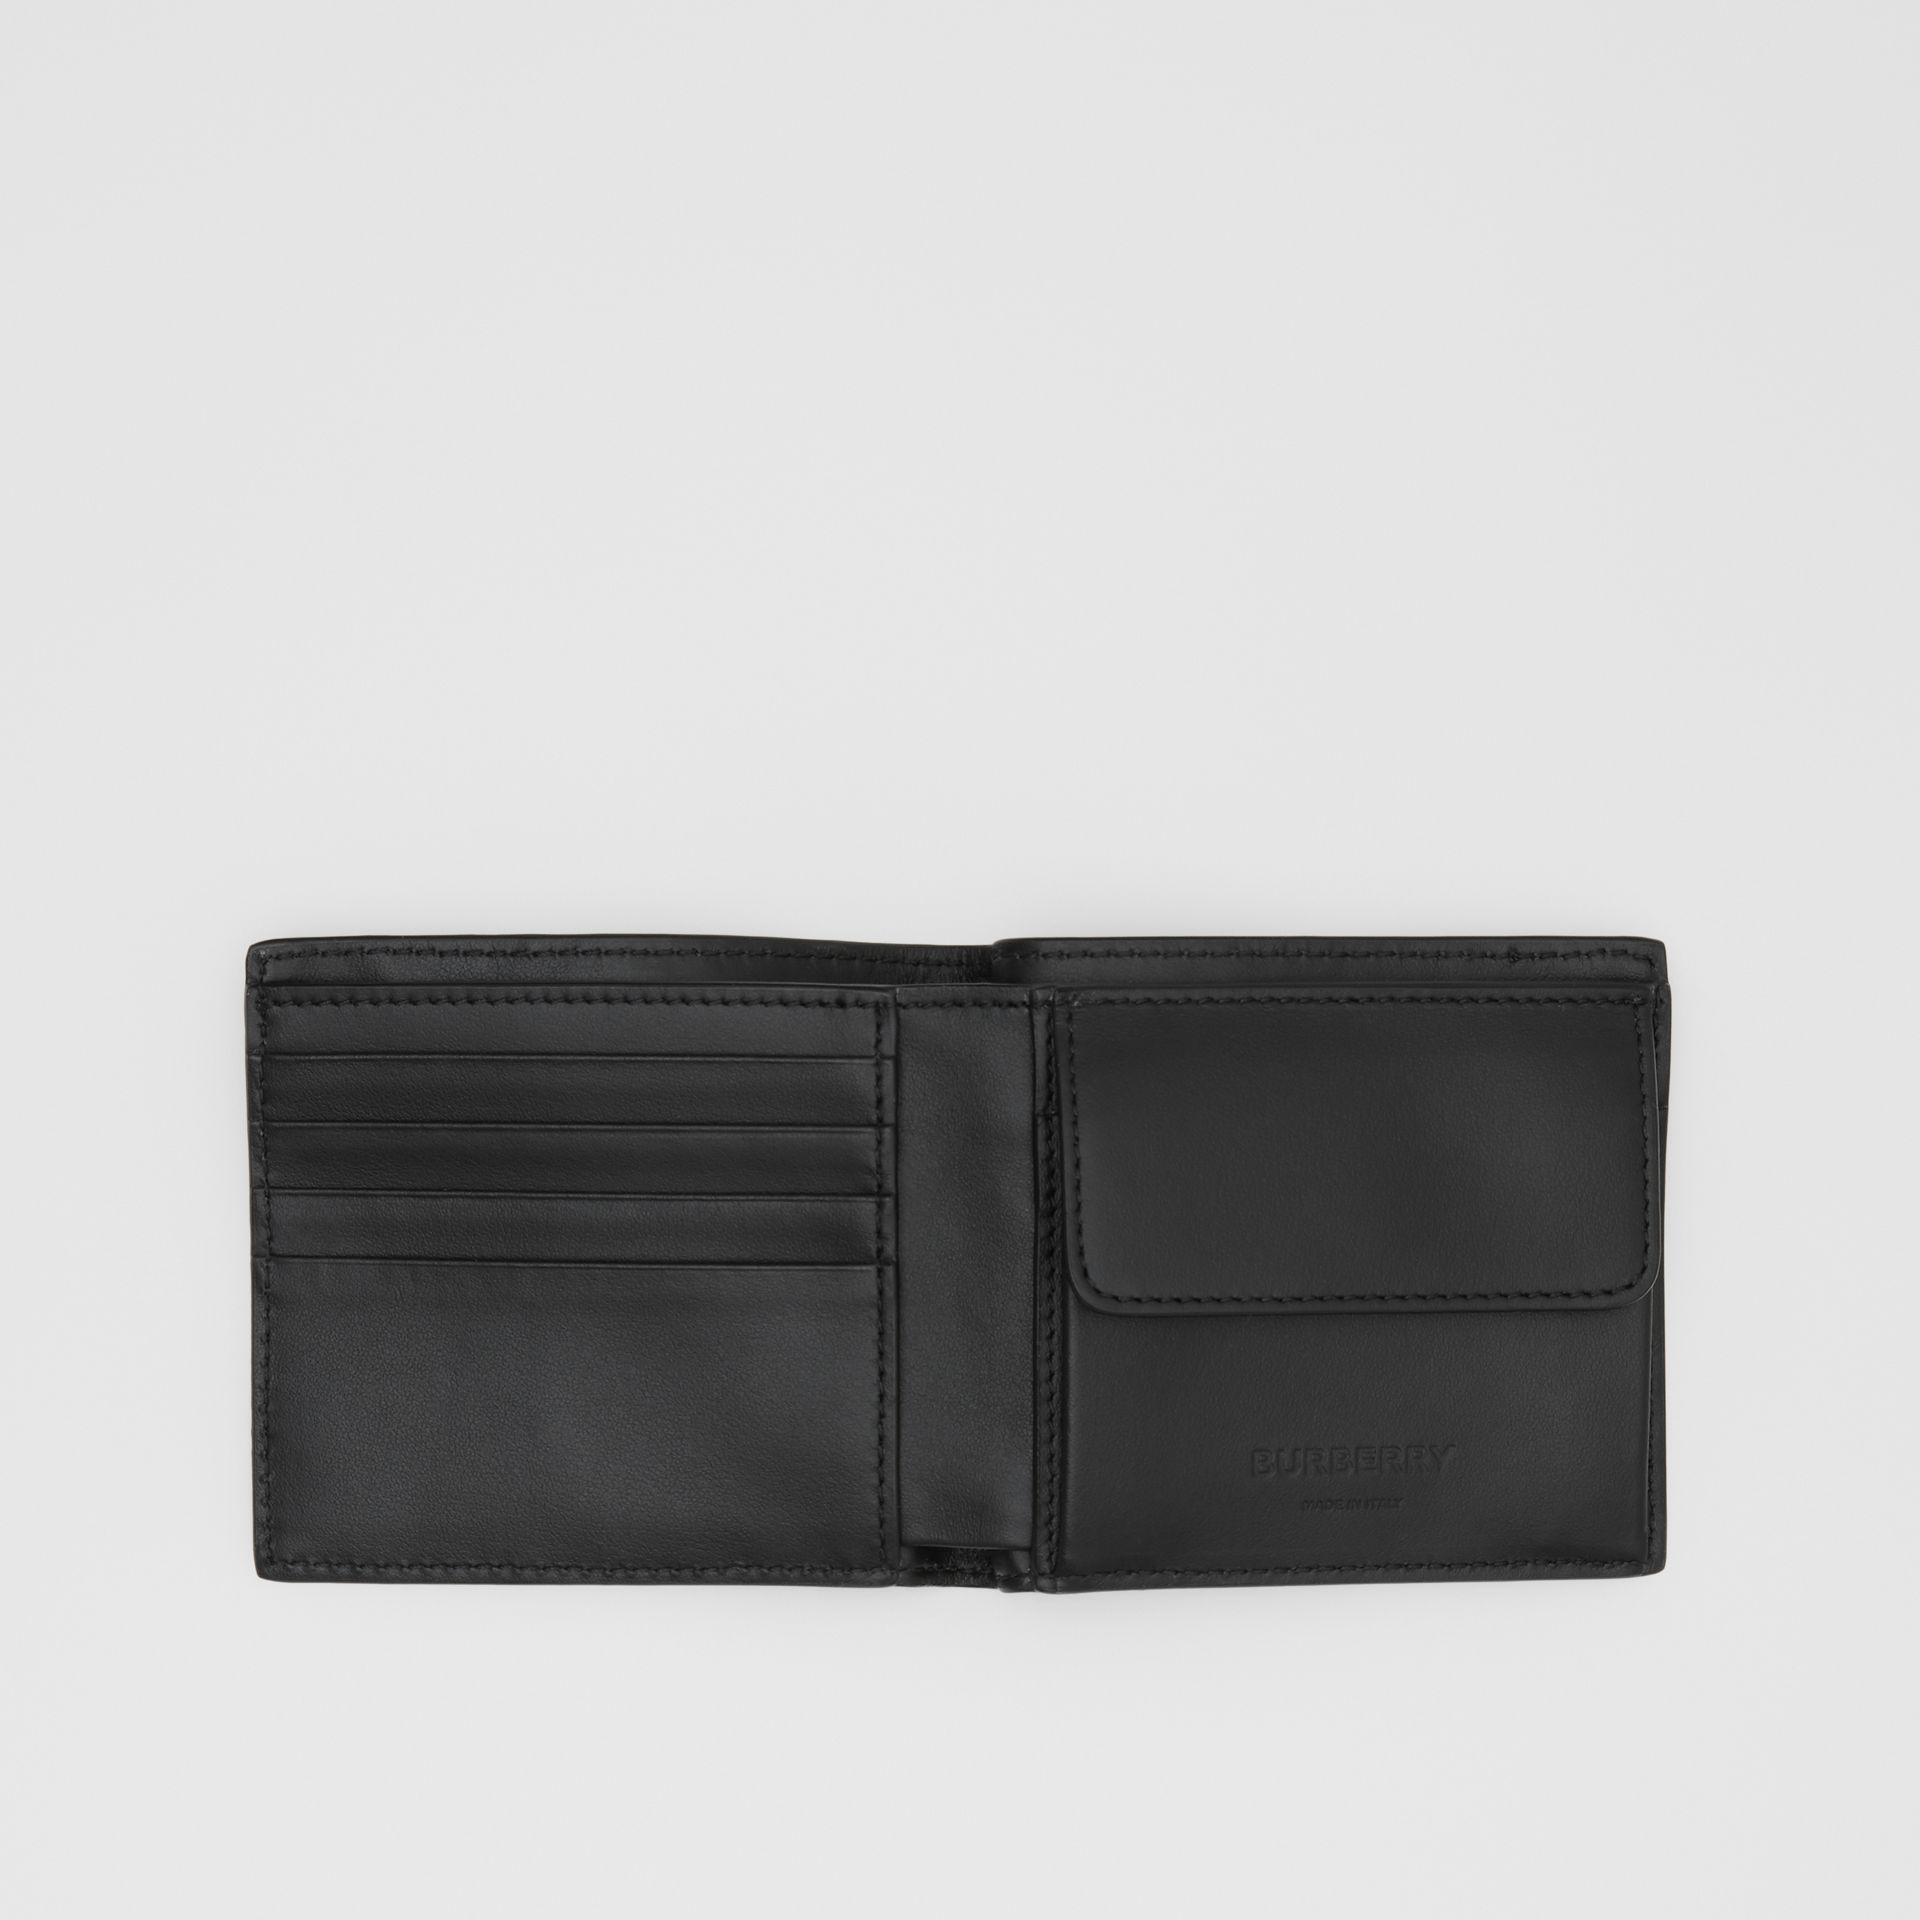 Monogram Leather International Bifold Coin Wallet in Black - Men | Burberry United States - gallery image 2